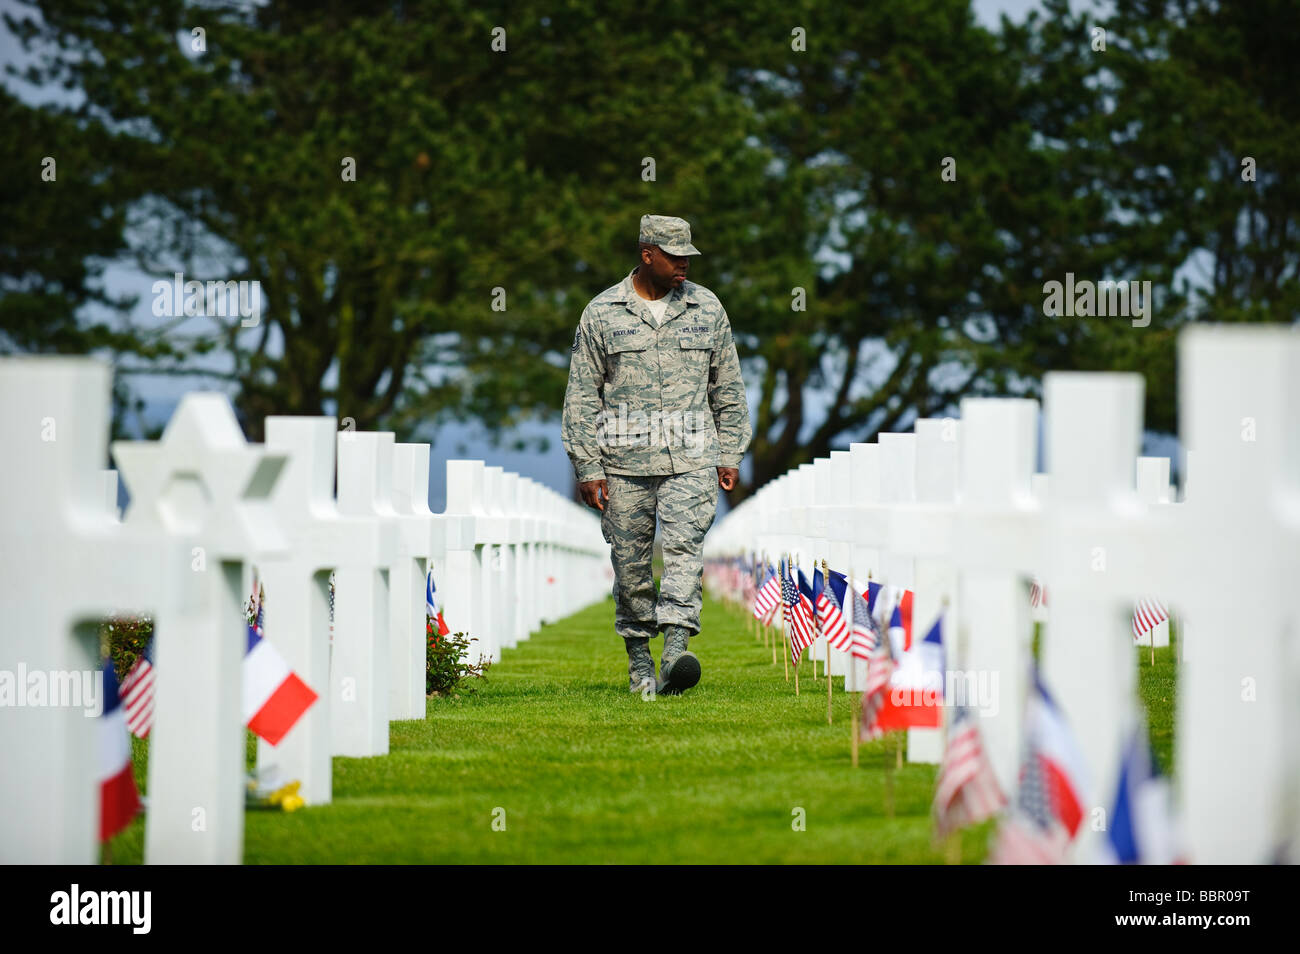 65th D Day Anniversary Normandy American Cemetery